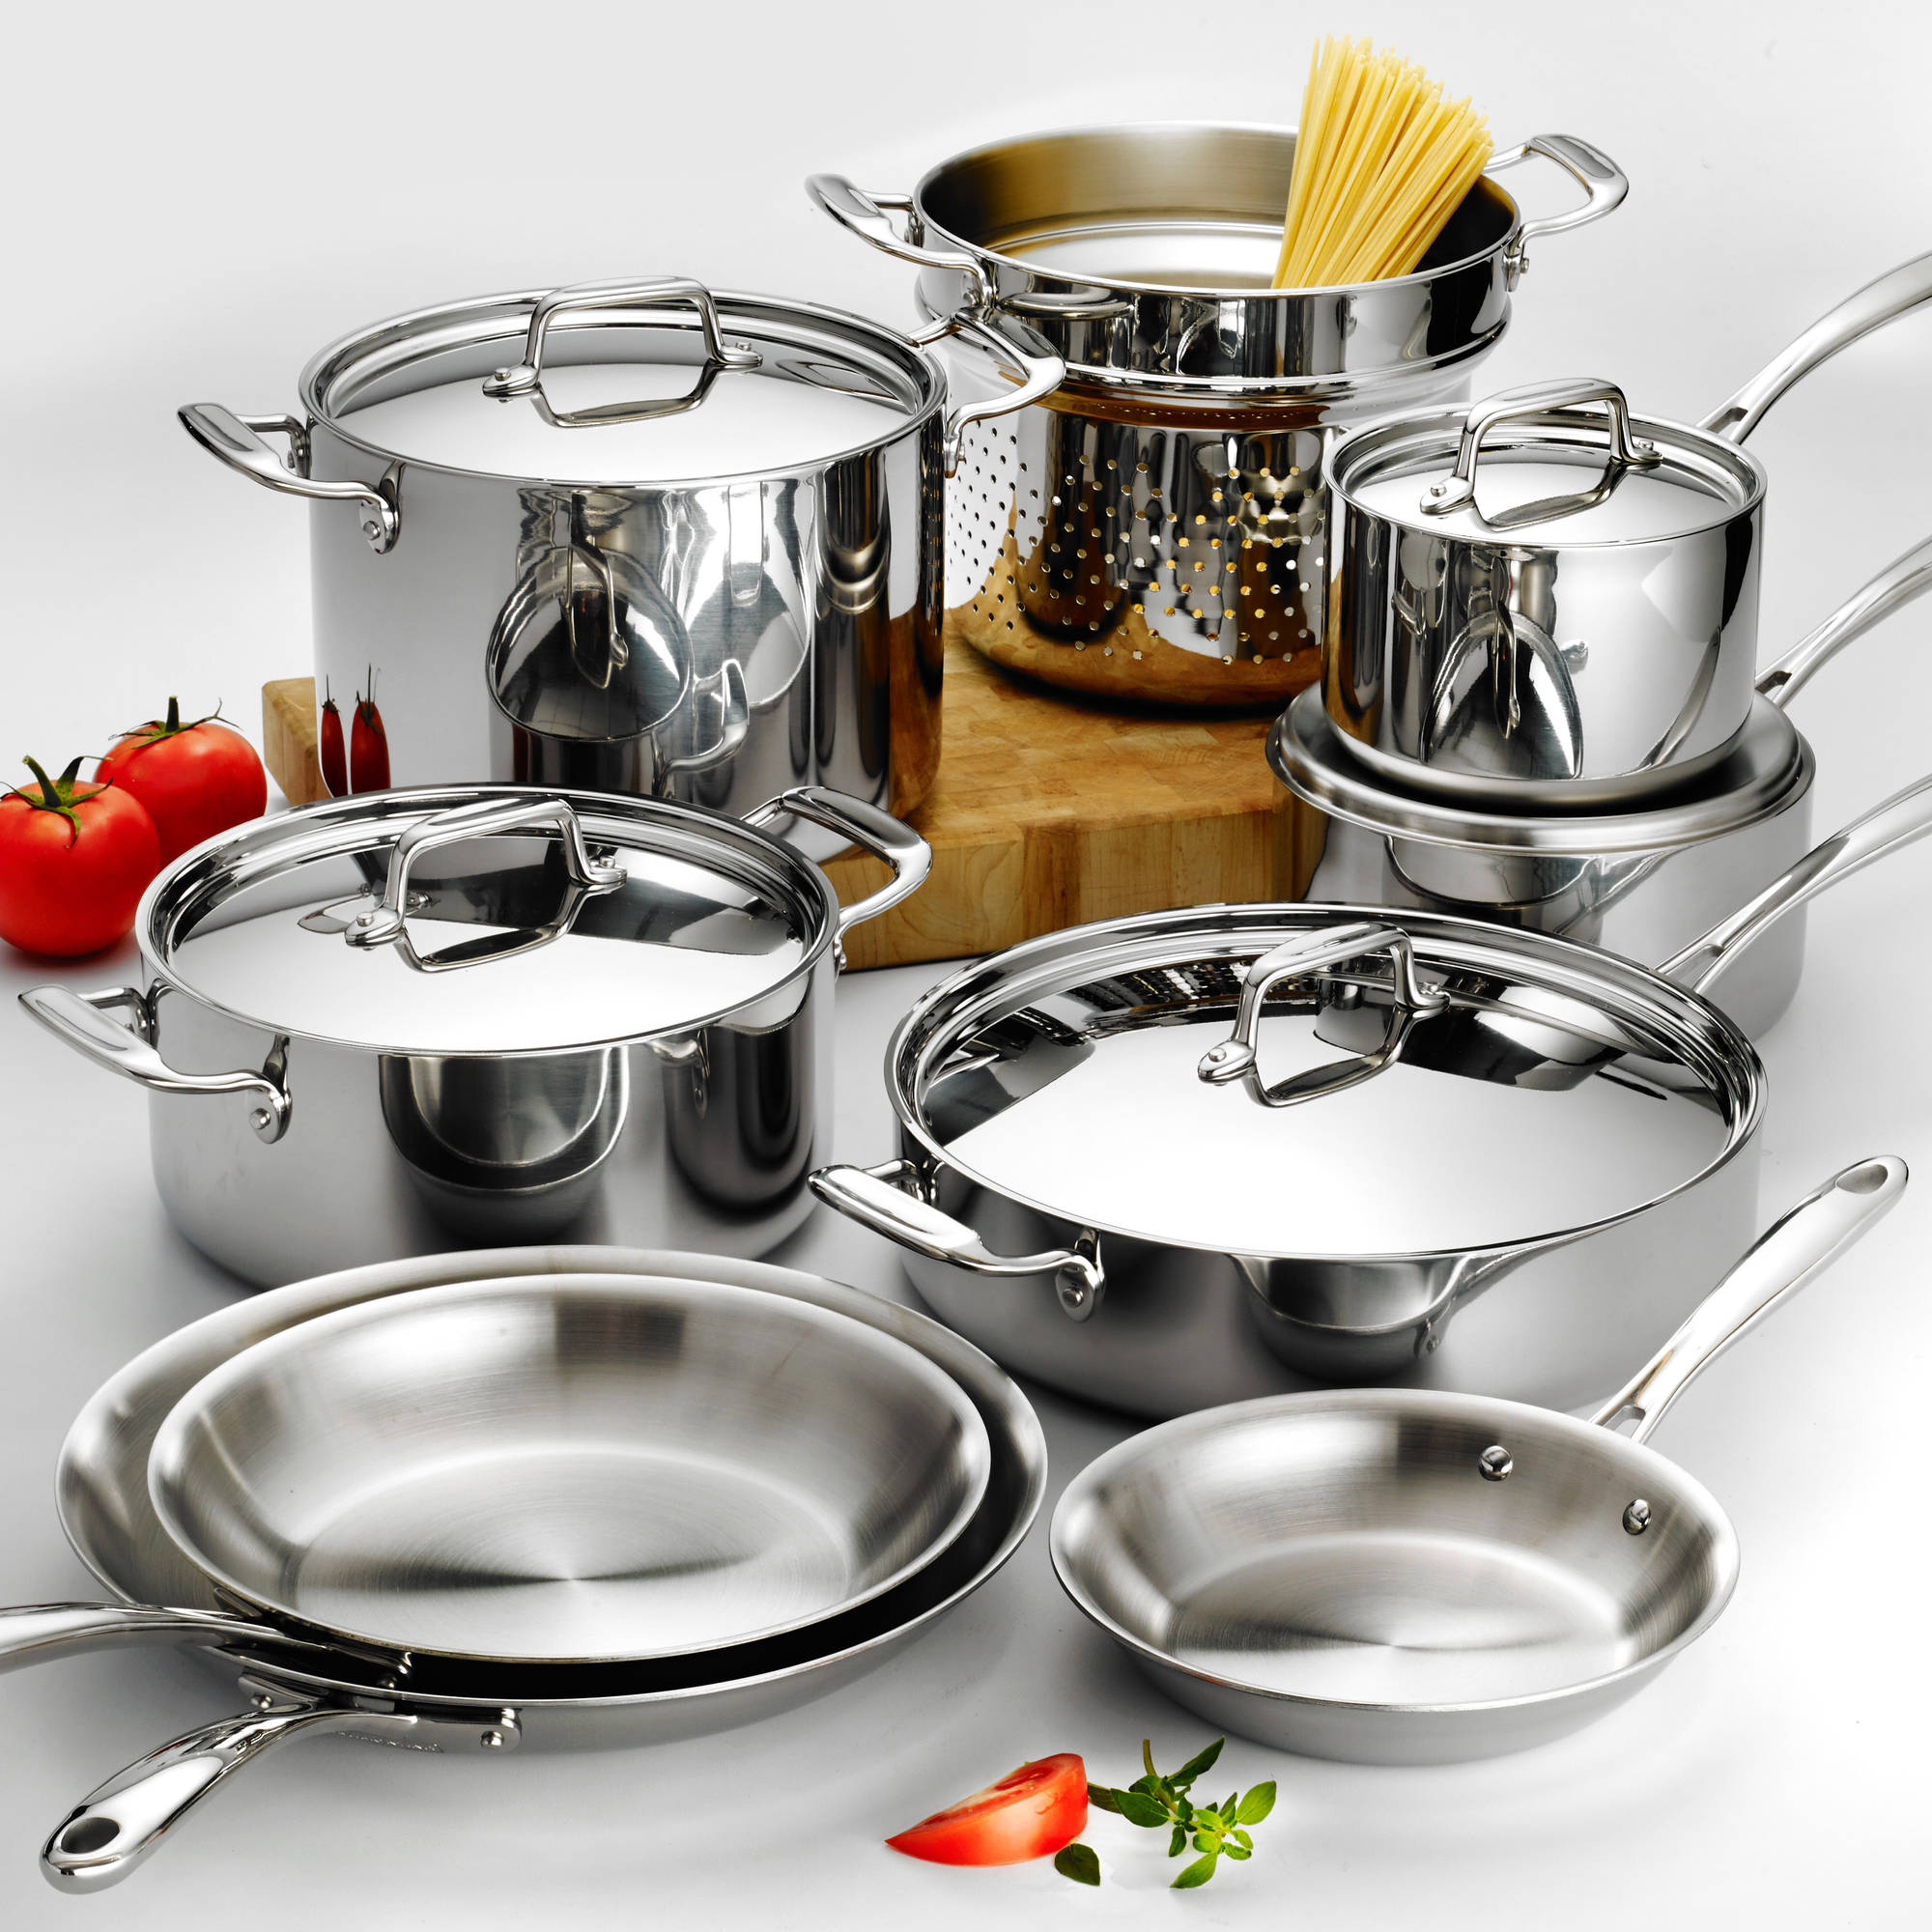 Tramontina 14 Piece Stainless Steel Tri Ply Clad Cookware Set